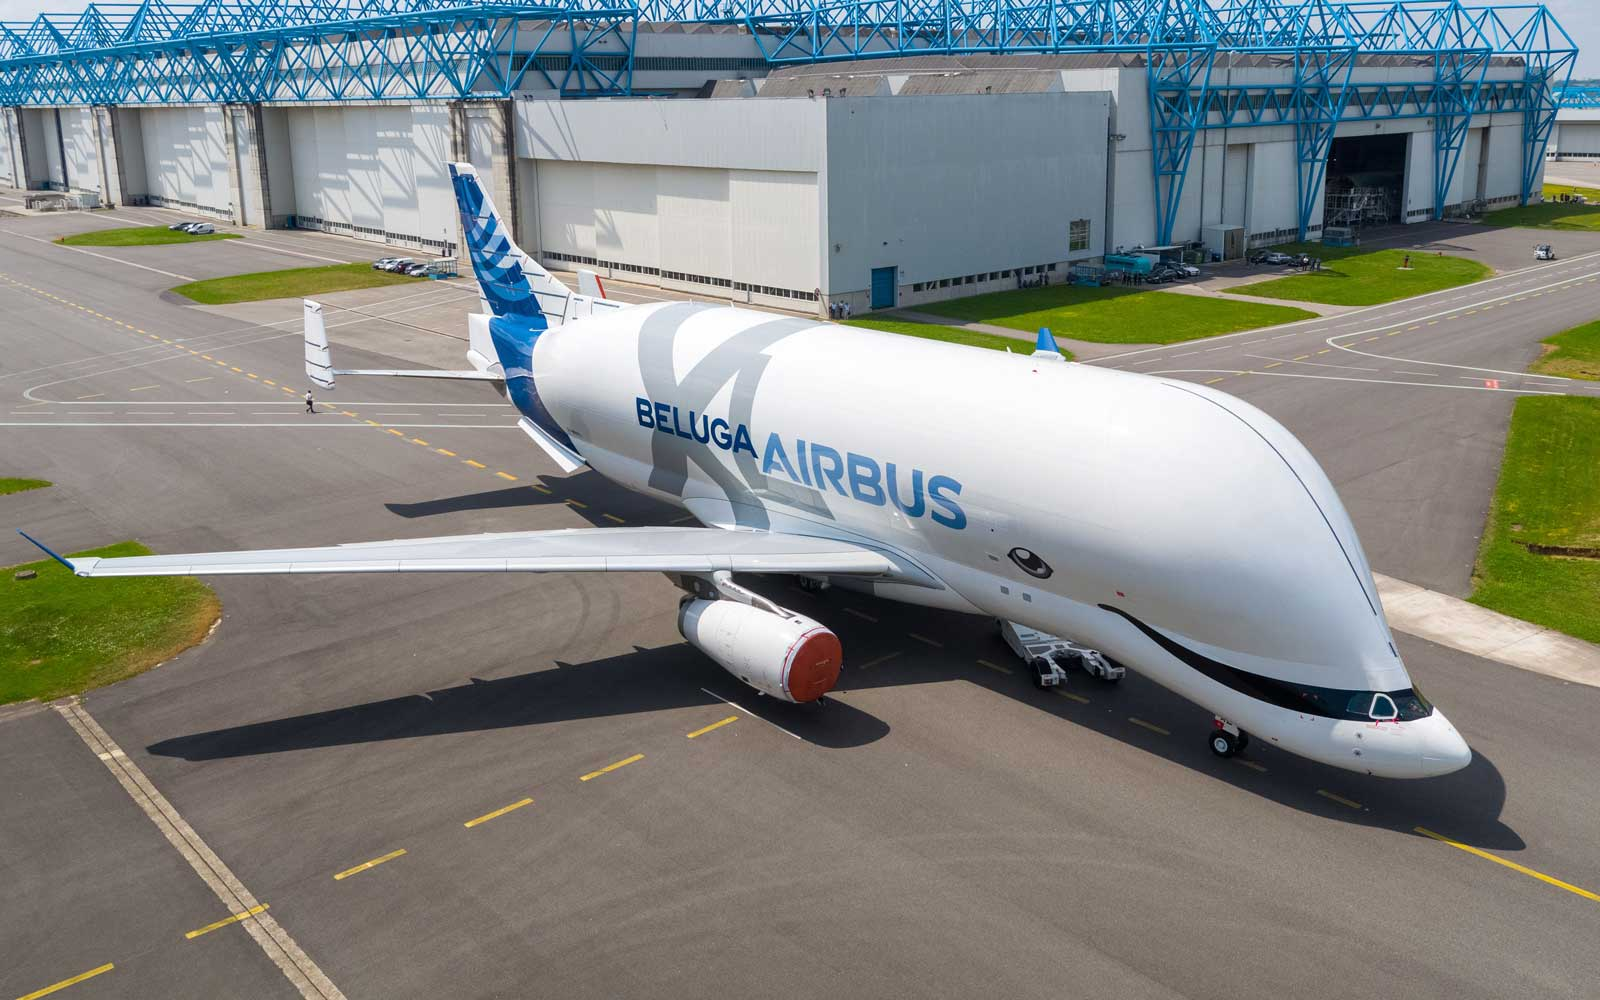 The first BelugaXL oversize cargo airlifter shows off its special beluga whale-inspired livery